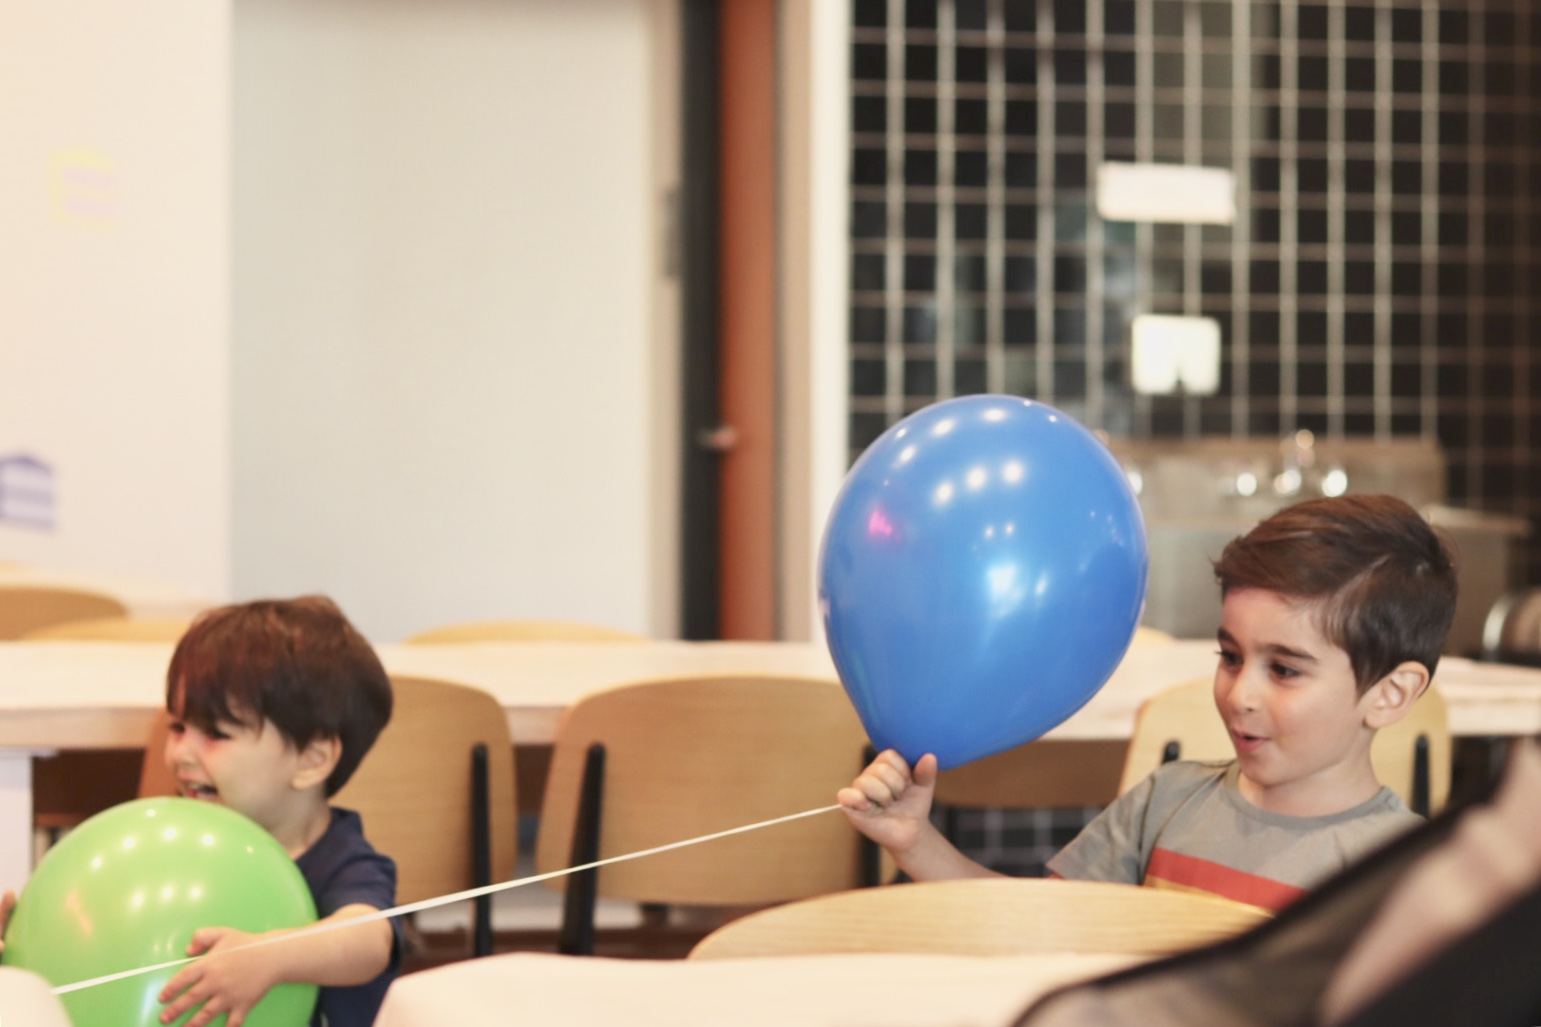 El Abad's sons Ryan (4 years old) and Leo (2 years old) playing with balloons. Land of Mom.